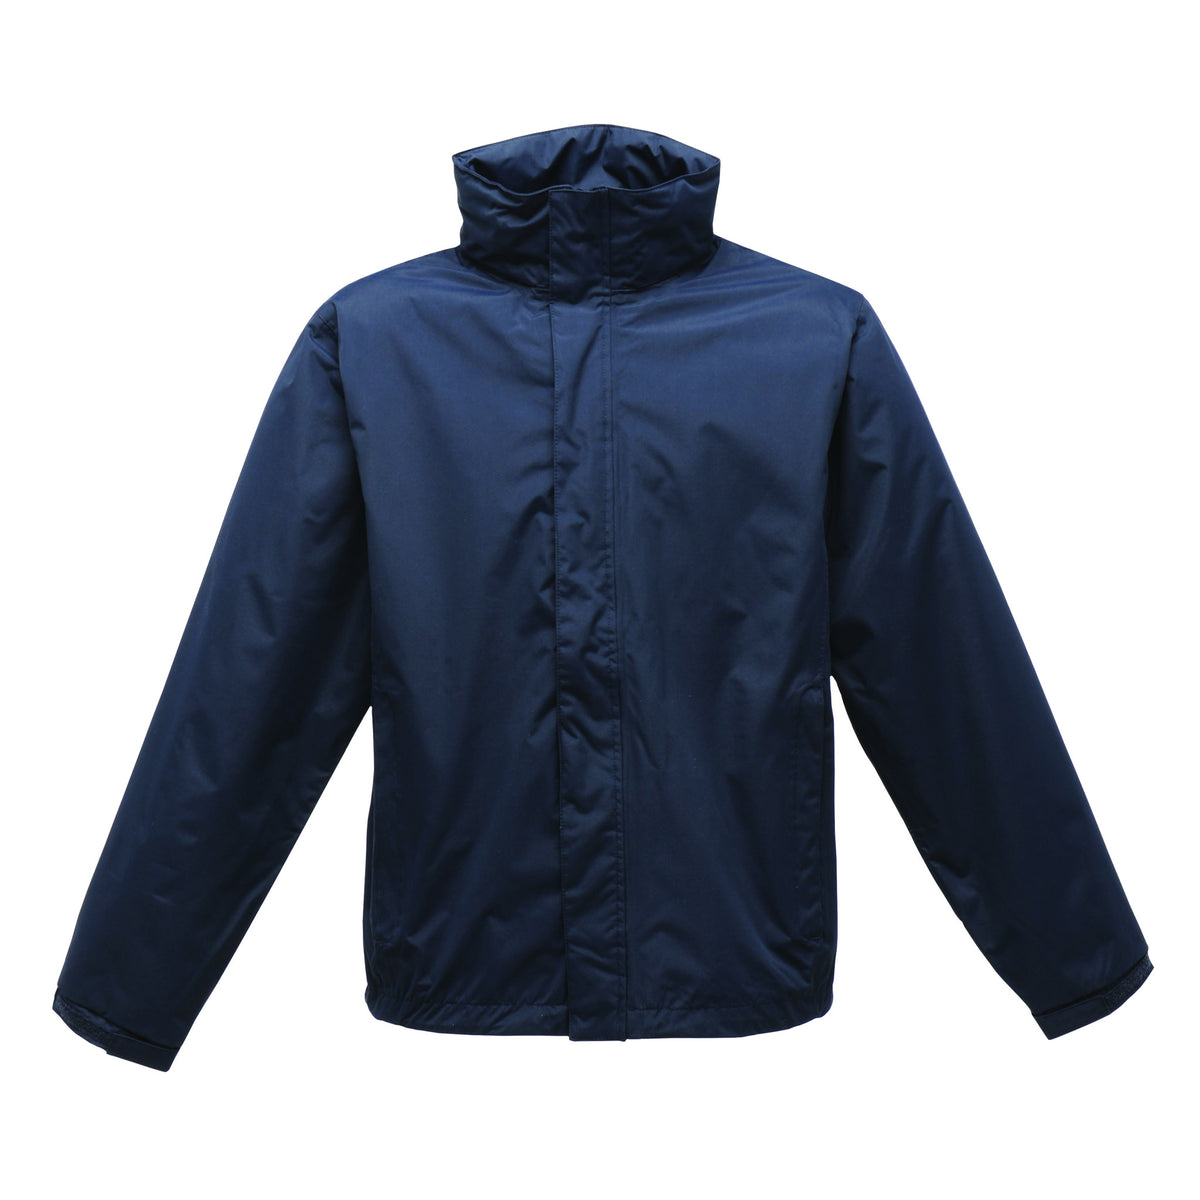 Regatta Pace II Jacket - peterdrew.com  - 3